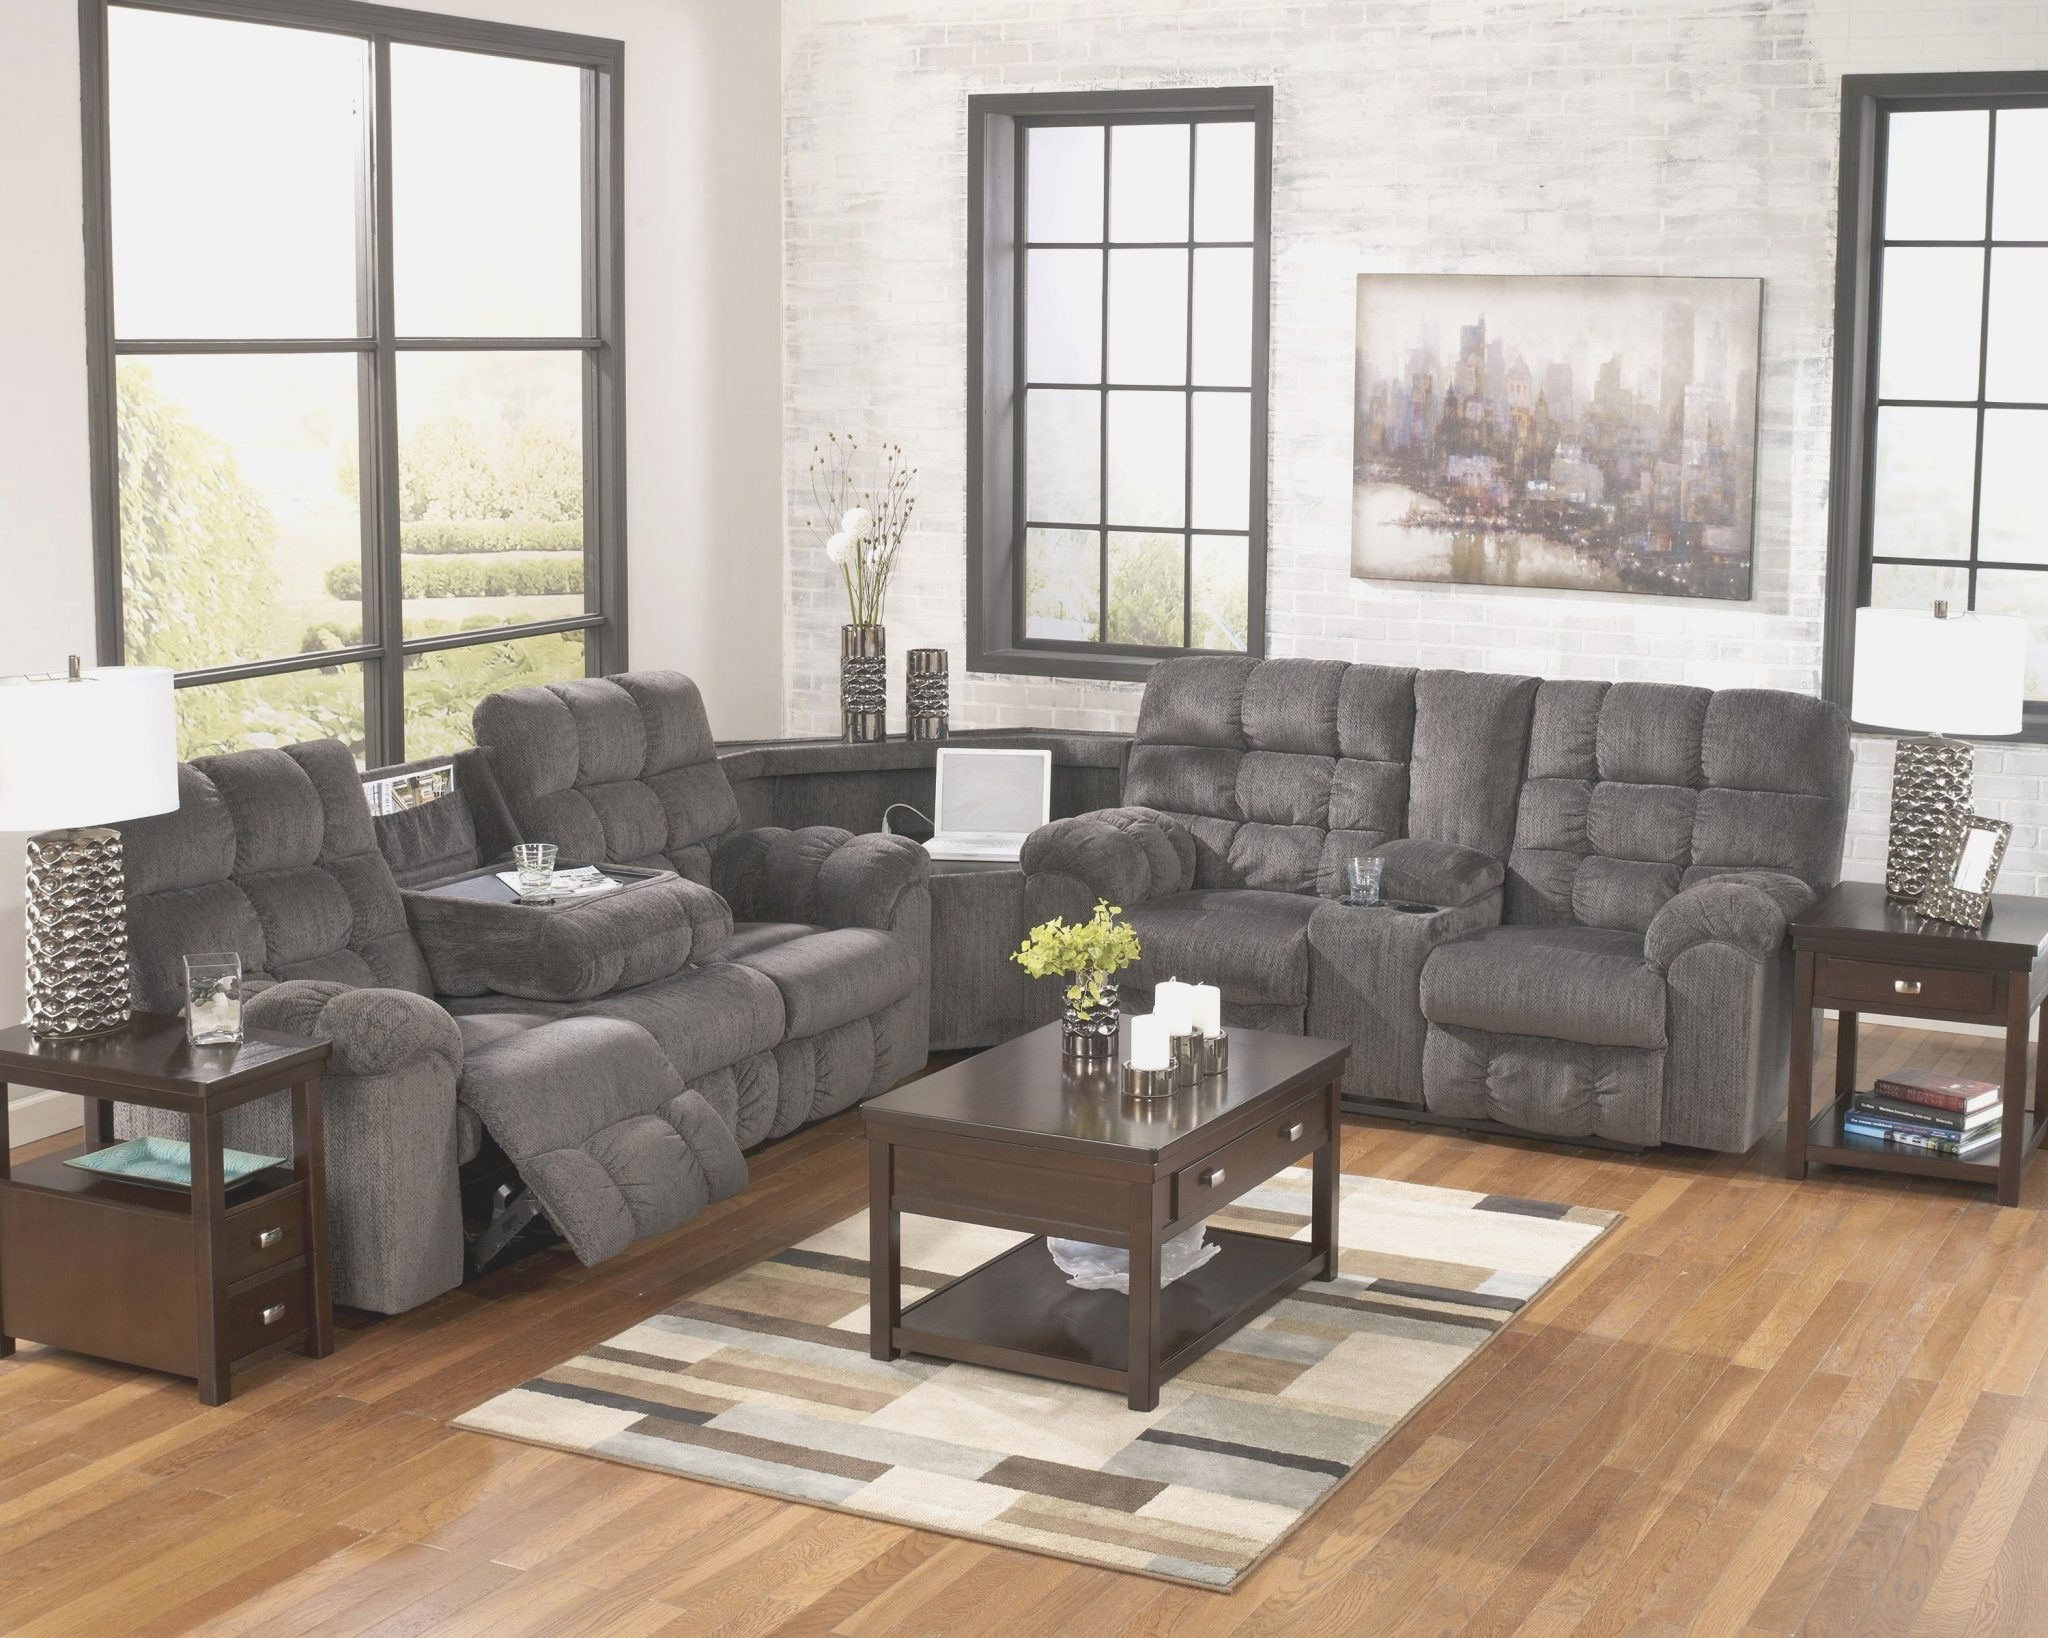 Sectional Recliner Sofa With Cup Holders Within Denali Light Grey 6 Piece Reclining Sectionals With 2 Power Headrests (View 25 of 25)